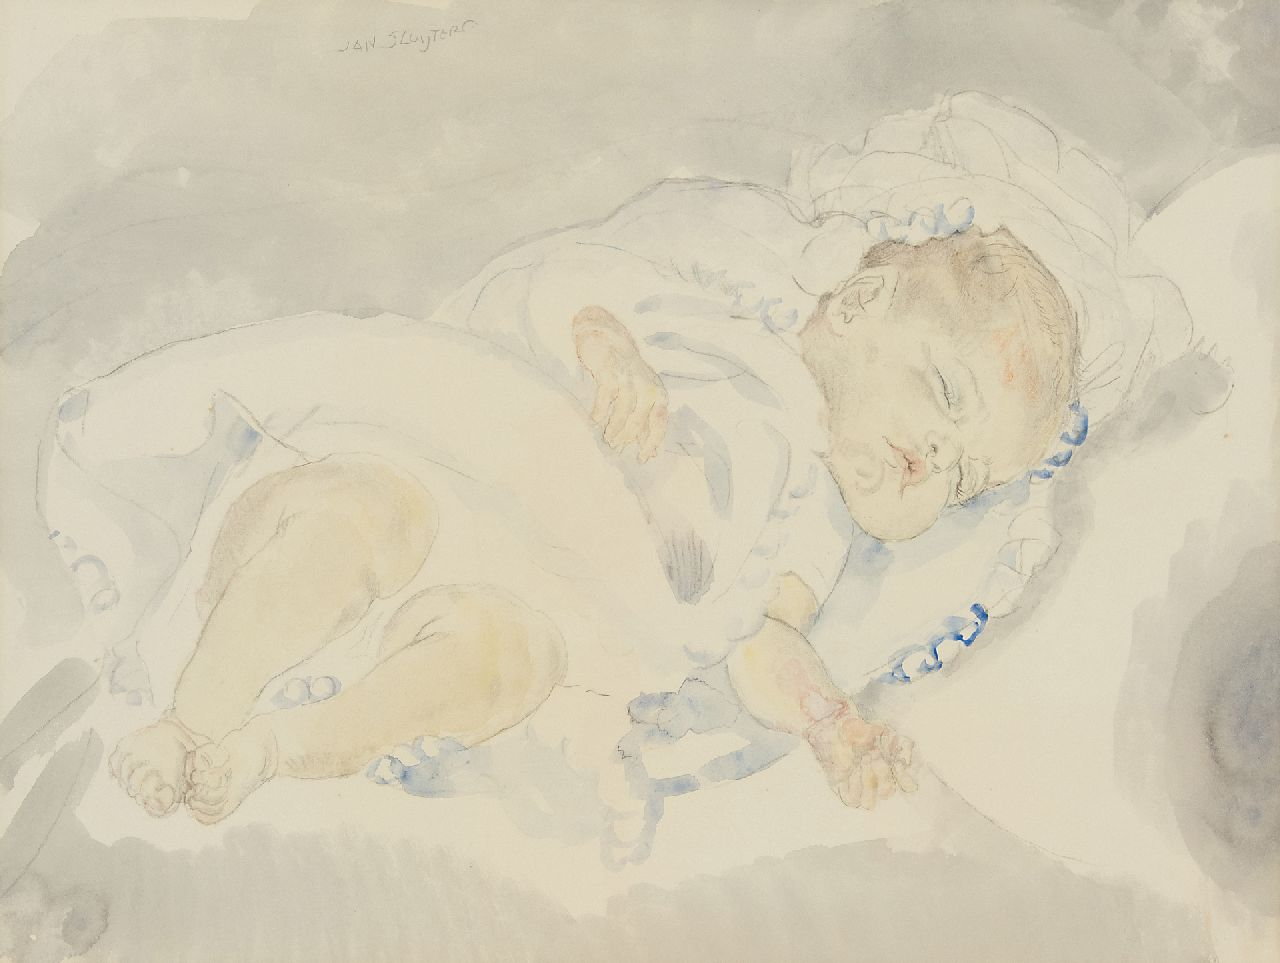 Sluijters J.C.B.  | Johannes Carolus Bernardus 'Jan' Sluijters | Watercolours and drawings offered for sale | Sleeping baby, pencil and watercolour on paper 46.5 x 58.5 cm, signed u.l.